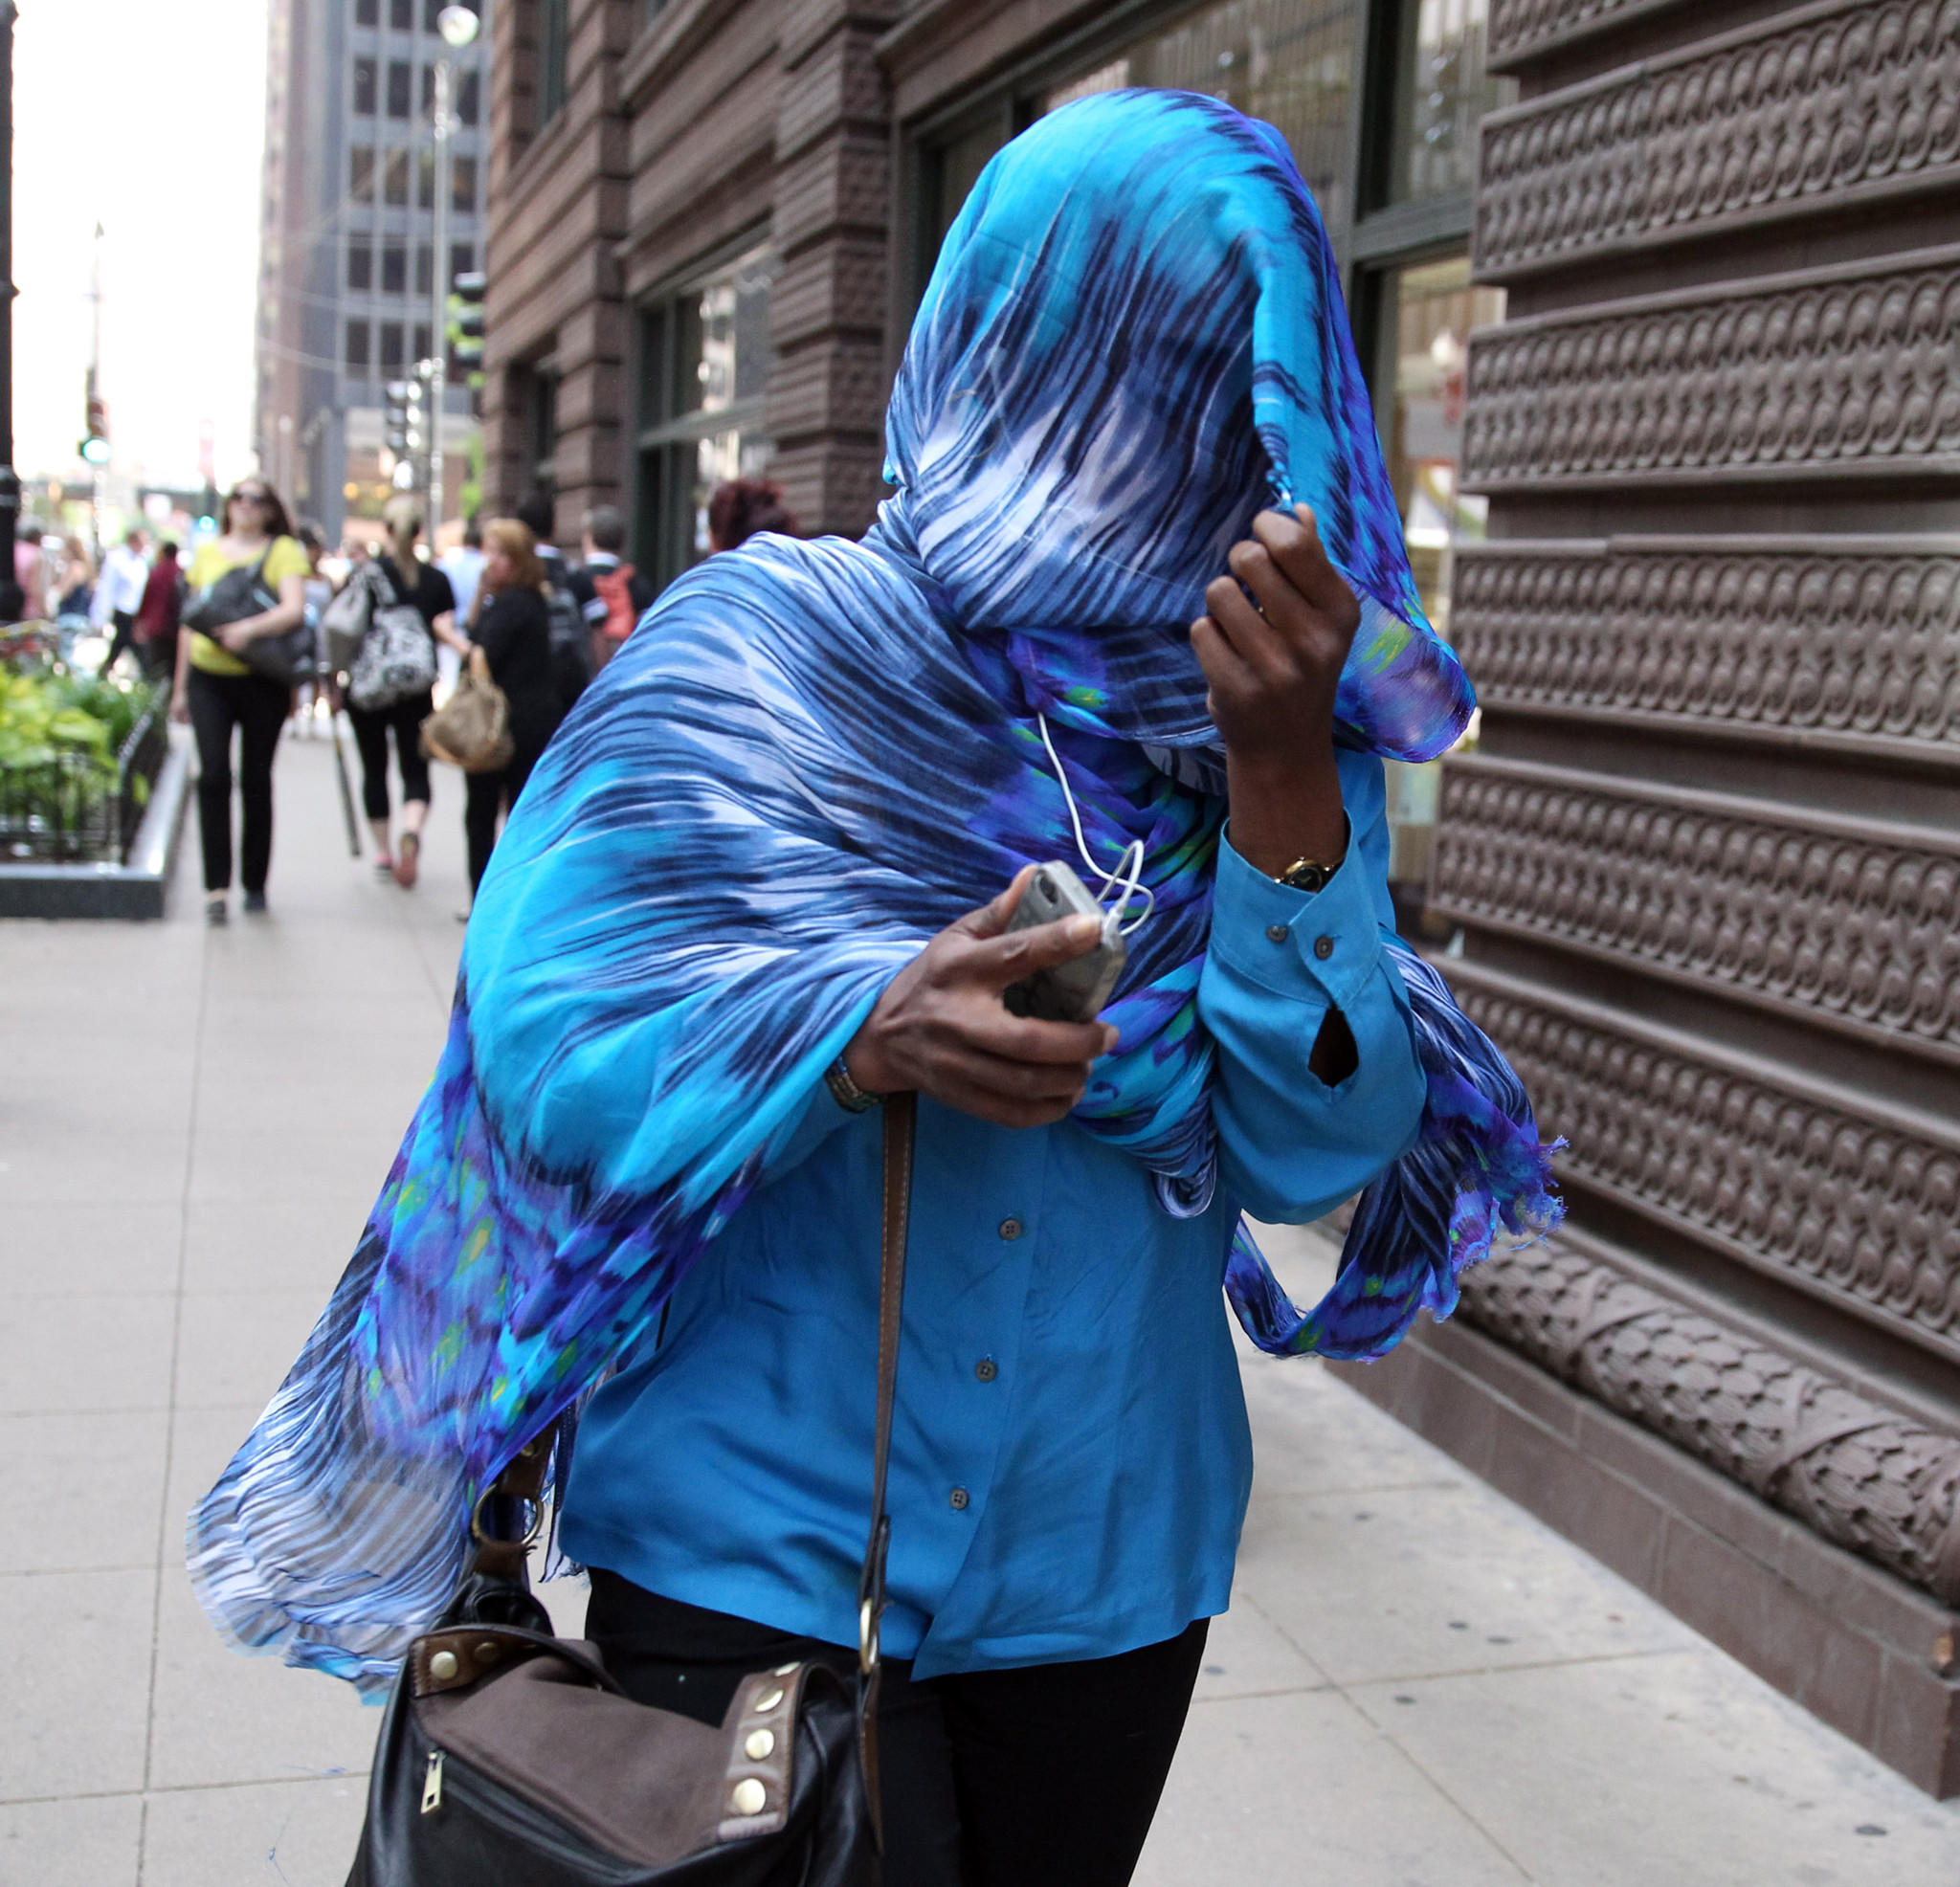 Using a scarf to obscure her face, Cherron Phillips leaves the Dirksen U.S. Courthouse in Chicago on Monday.